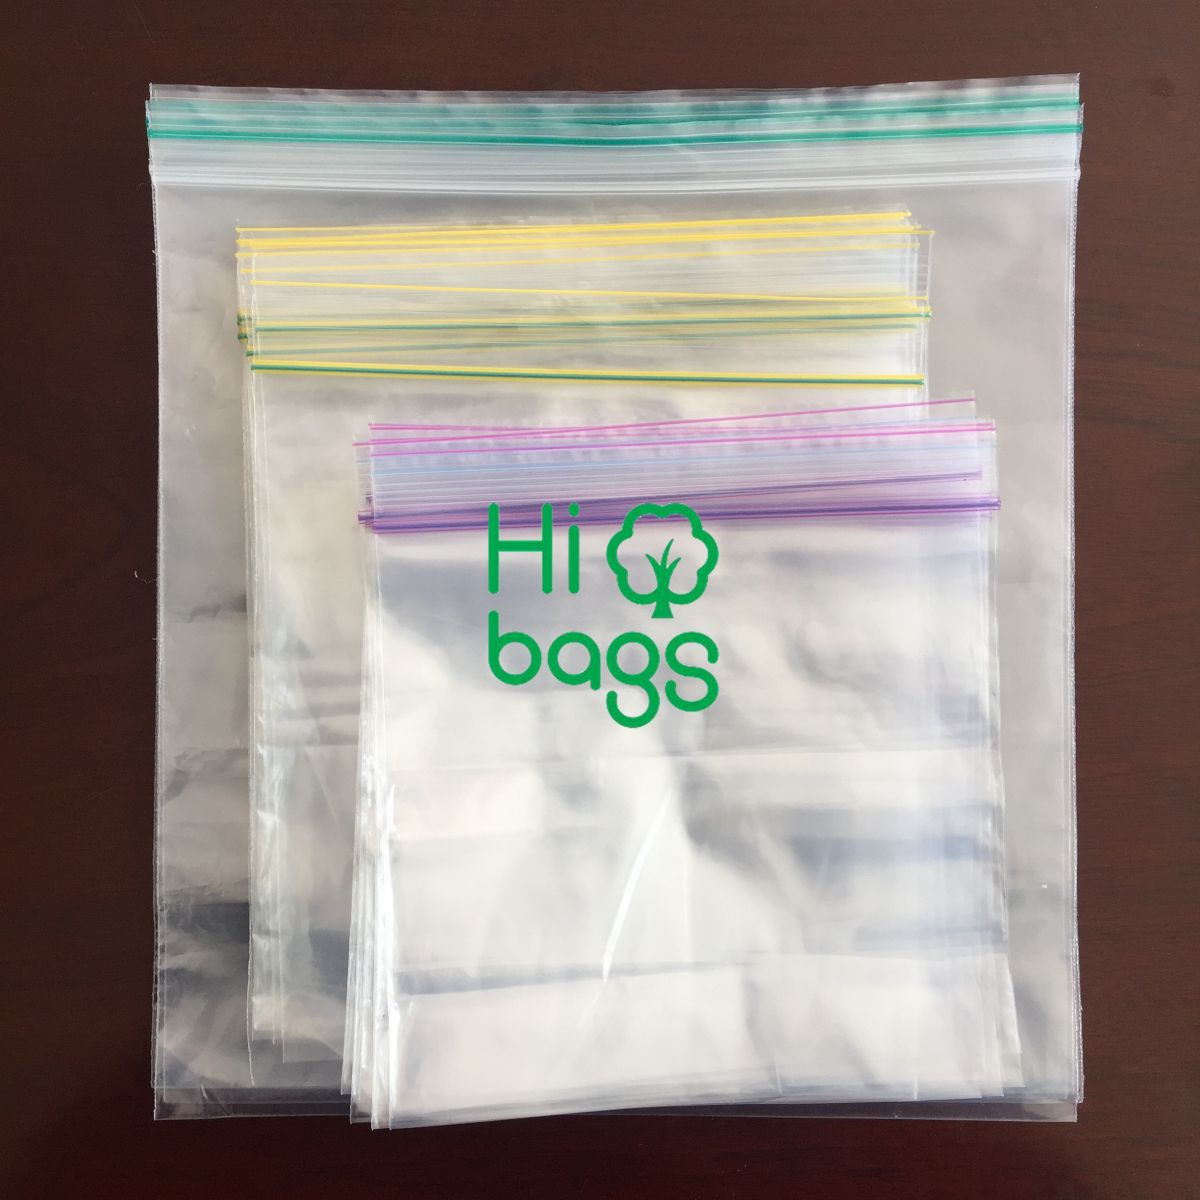 ziplock bags a china wholesale ziplock bags a manufacturer supplier qingdao beaufy group. Black Bedroom Furniture Sets. Home Design Ideas